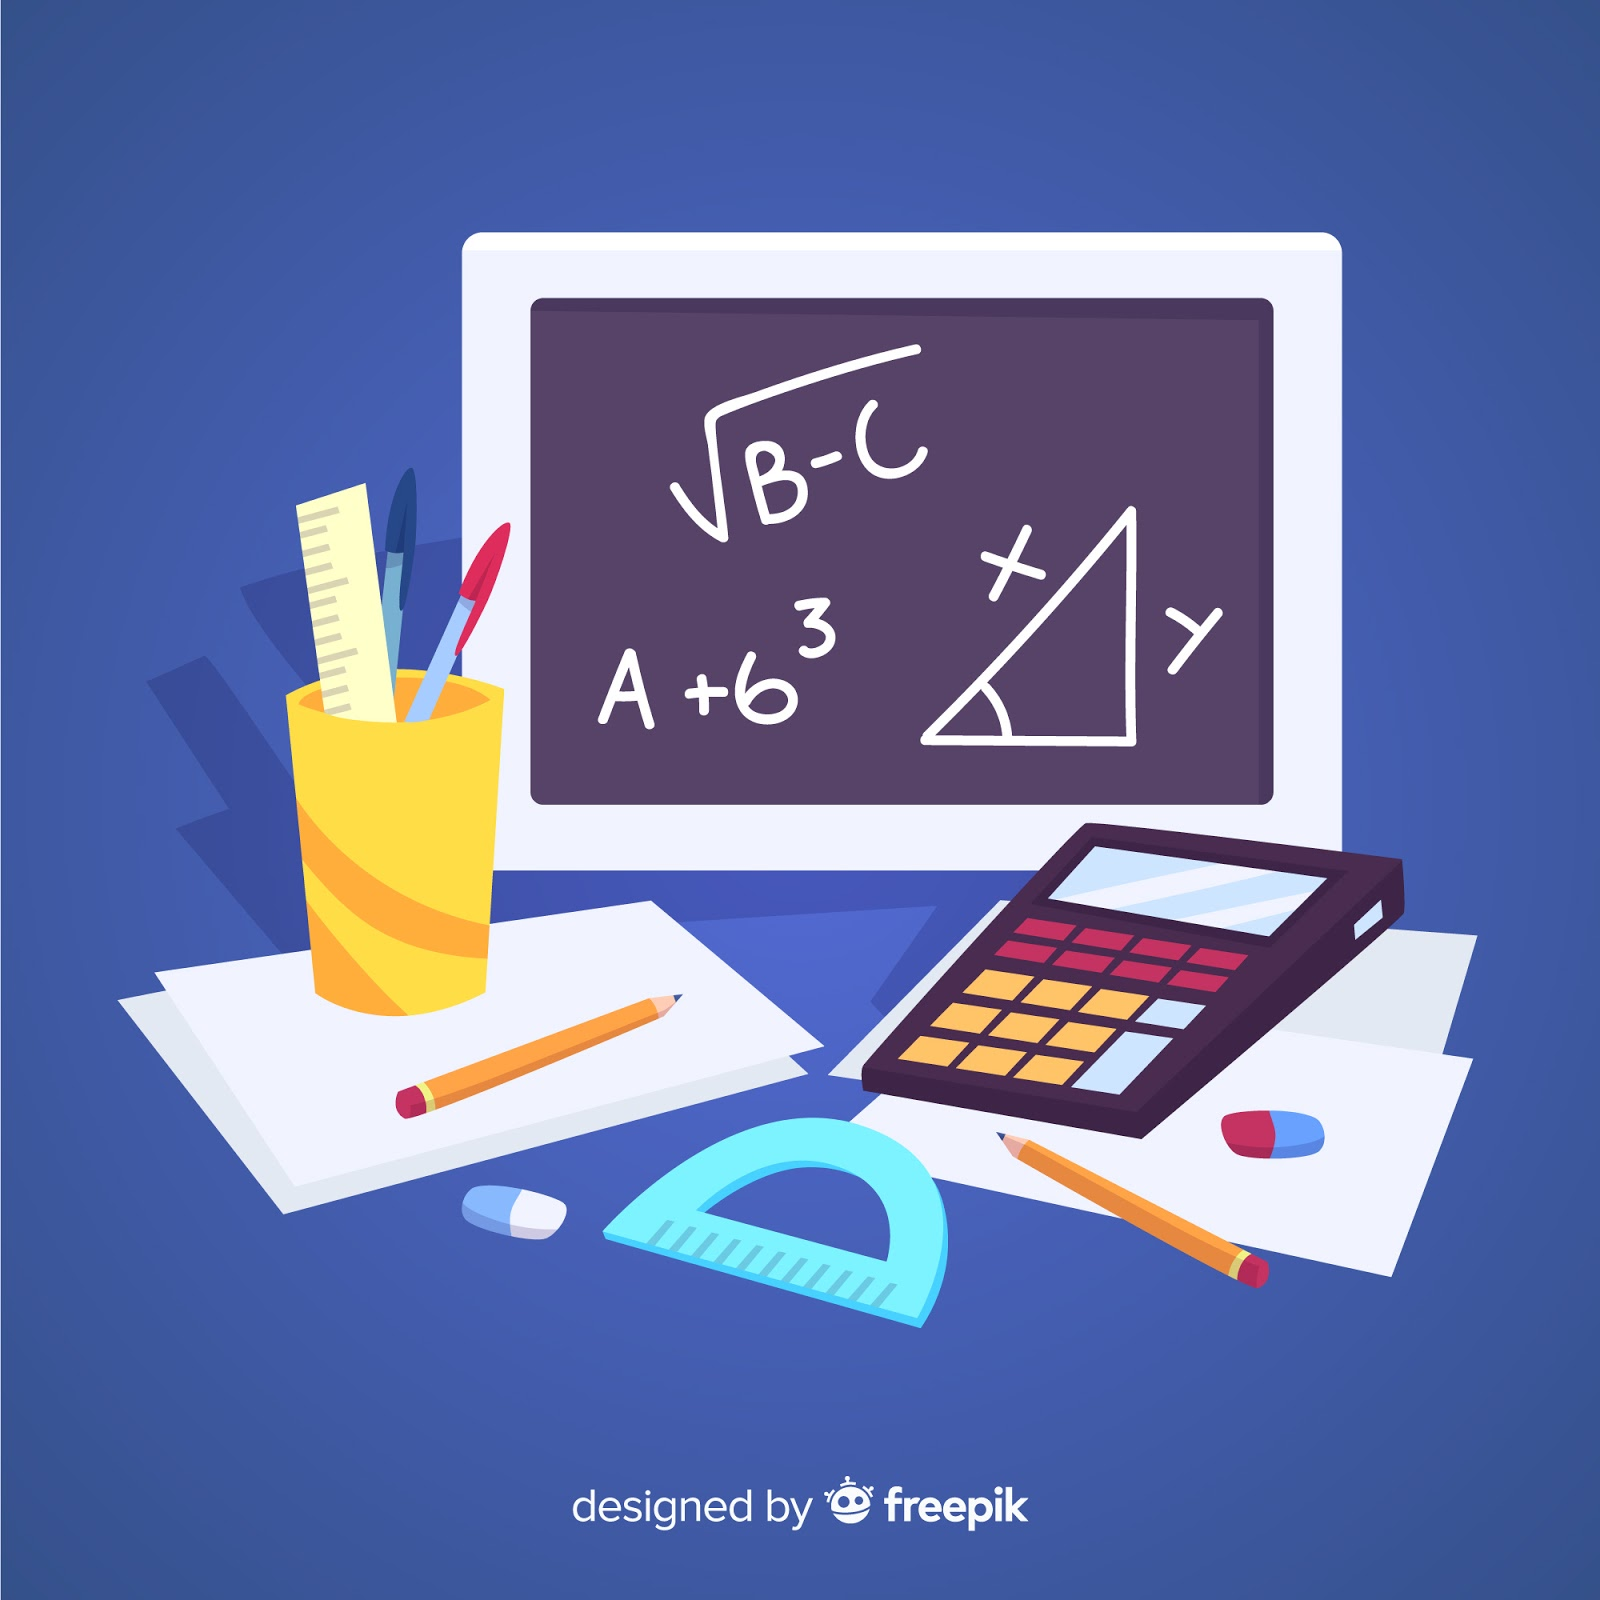 Cartoon Maths Material Background Free Download Vector CDR, AI, EPS and PNG Formats